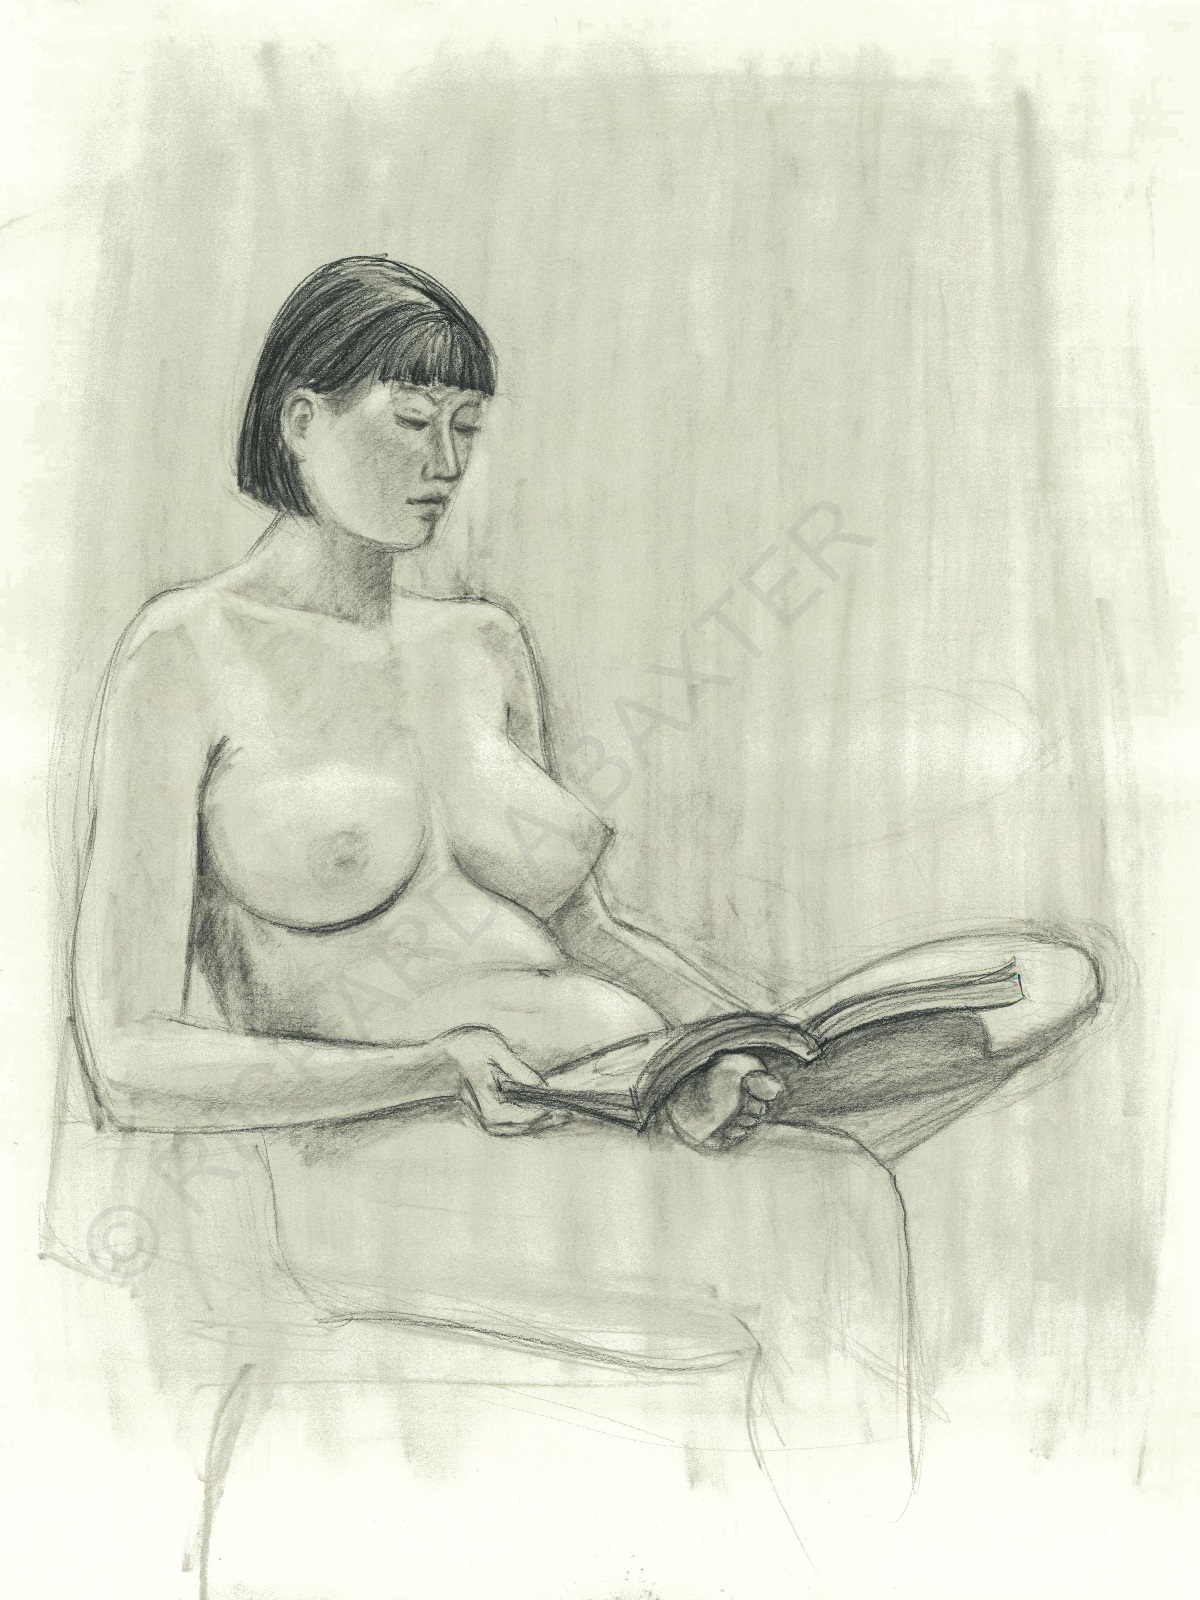 Drawing of seated figure by Dr. Baxter